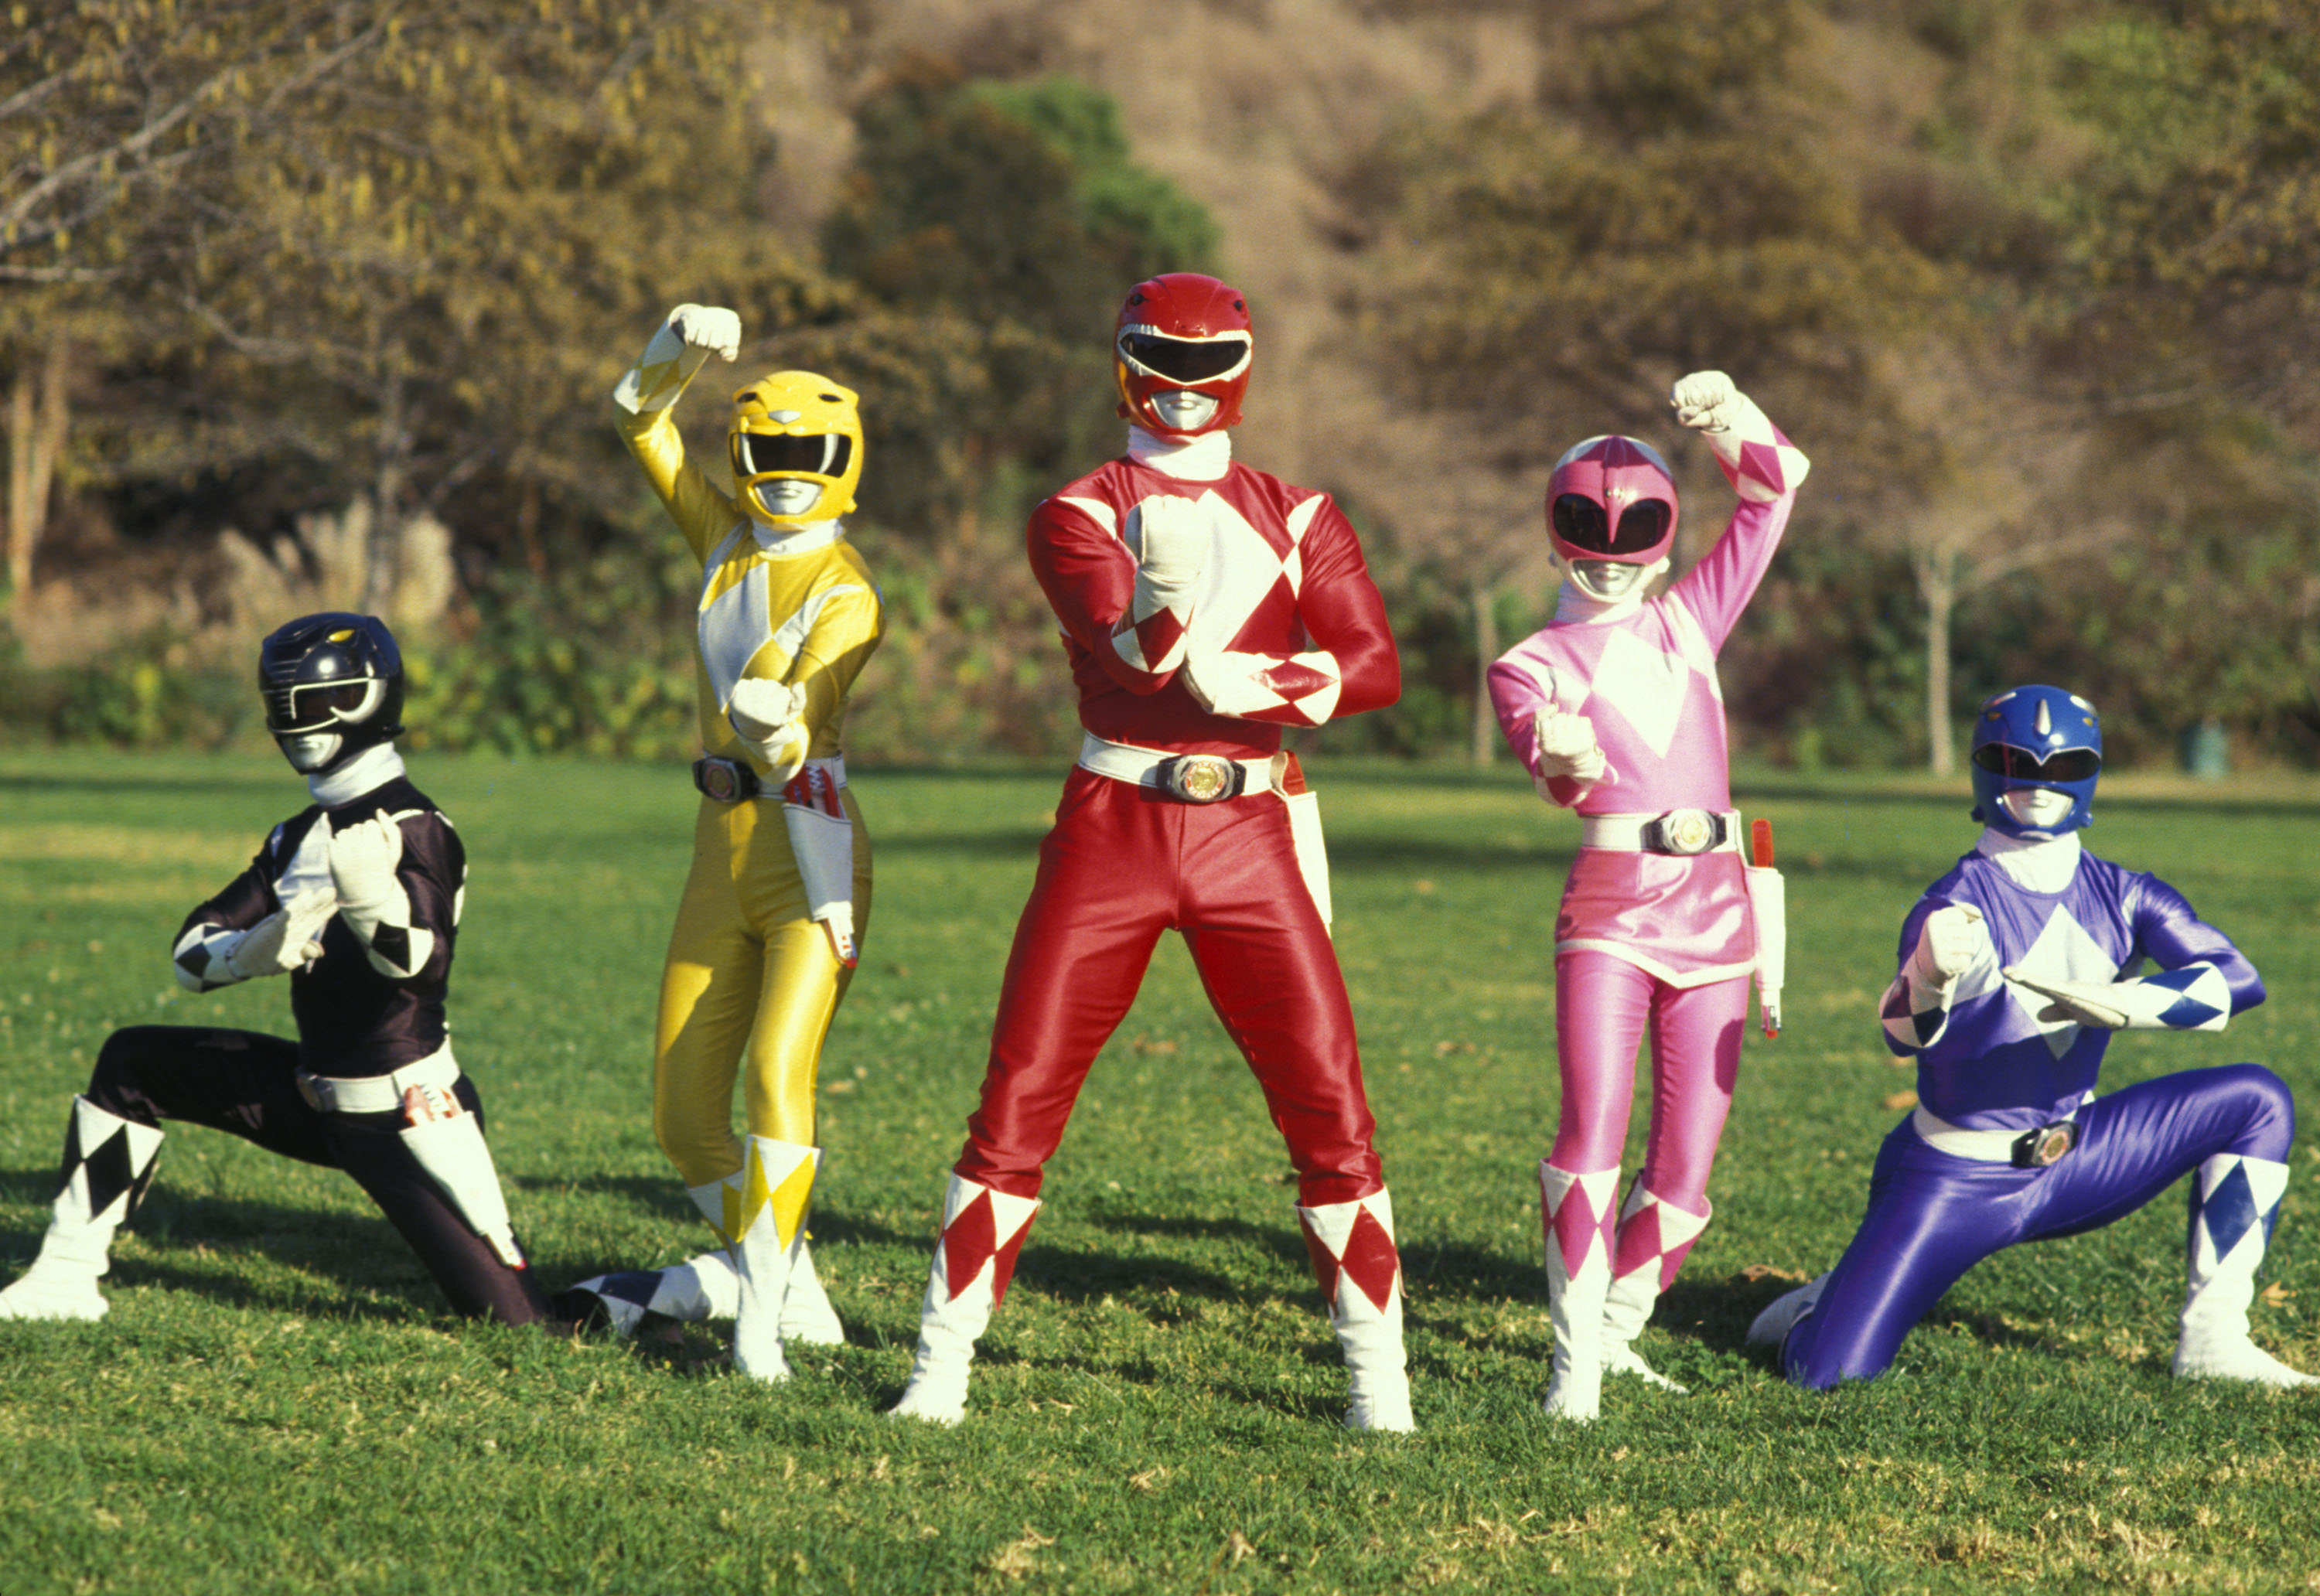 Saudades: Power Rangers